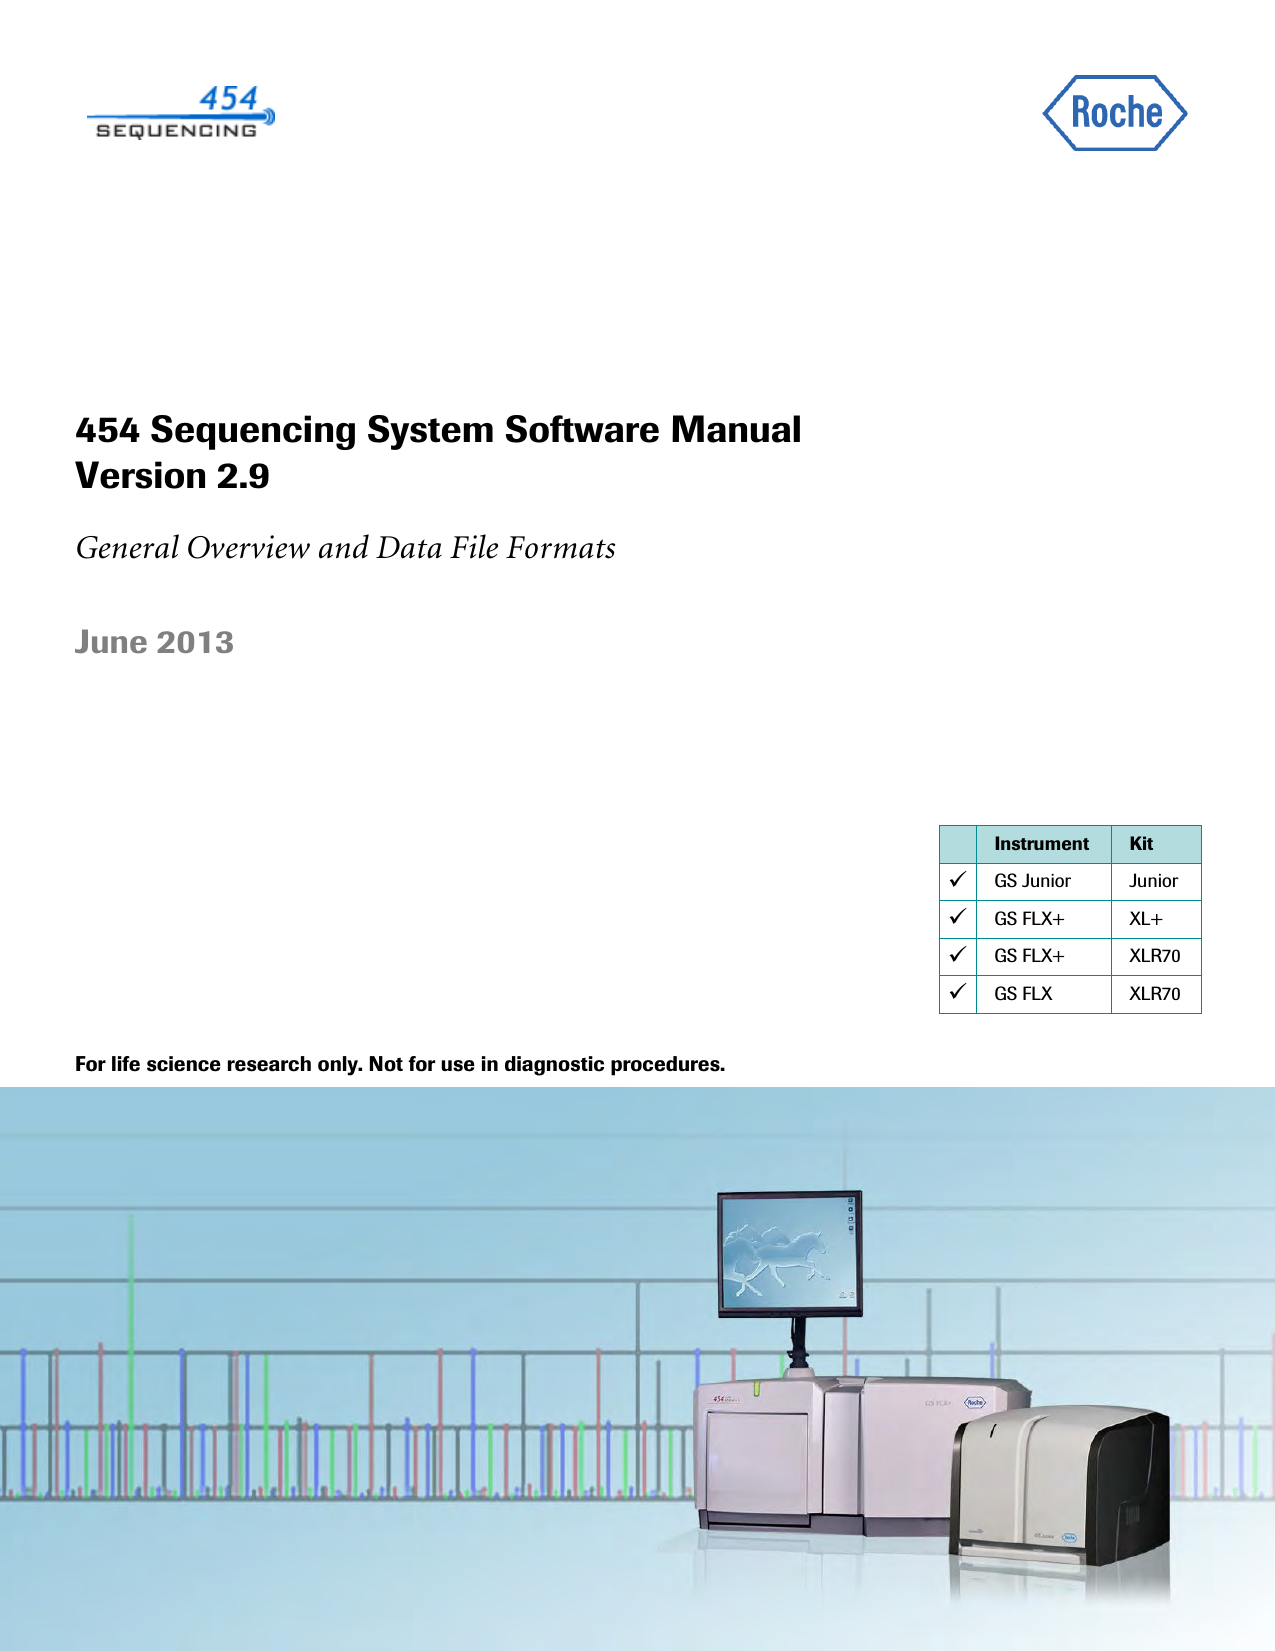 USM-00058.09_454SeqSys_SWManual-v2.9_Overview-01.png